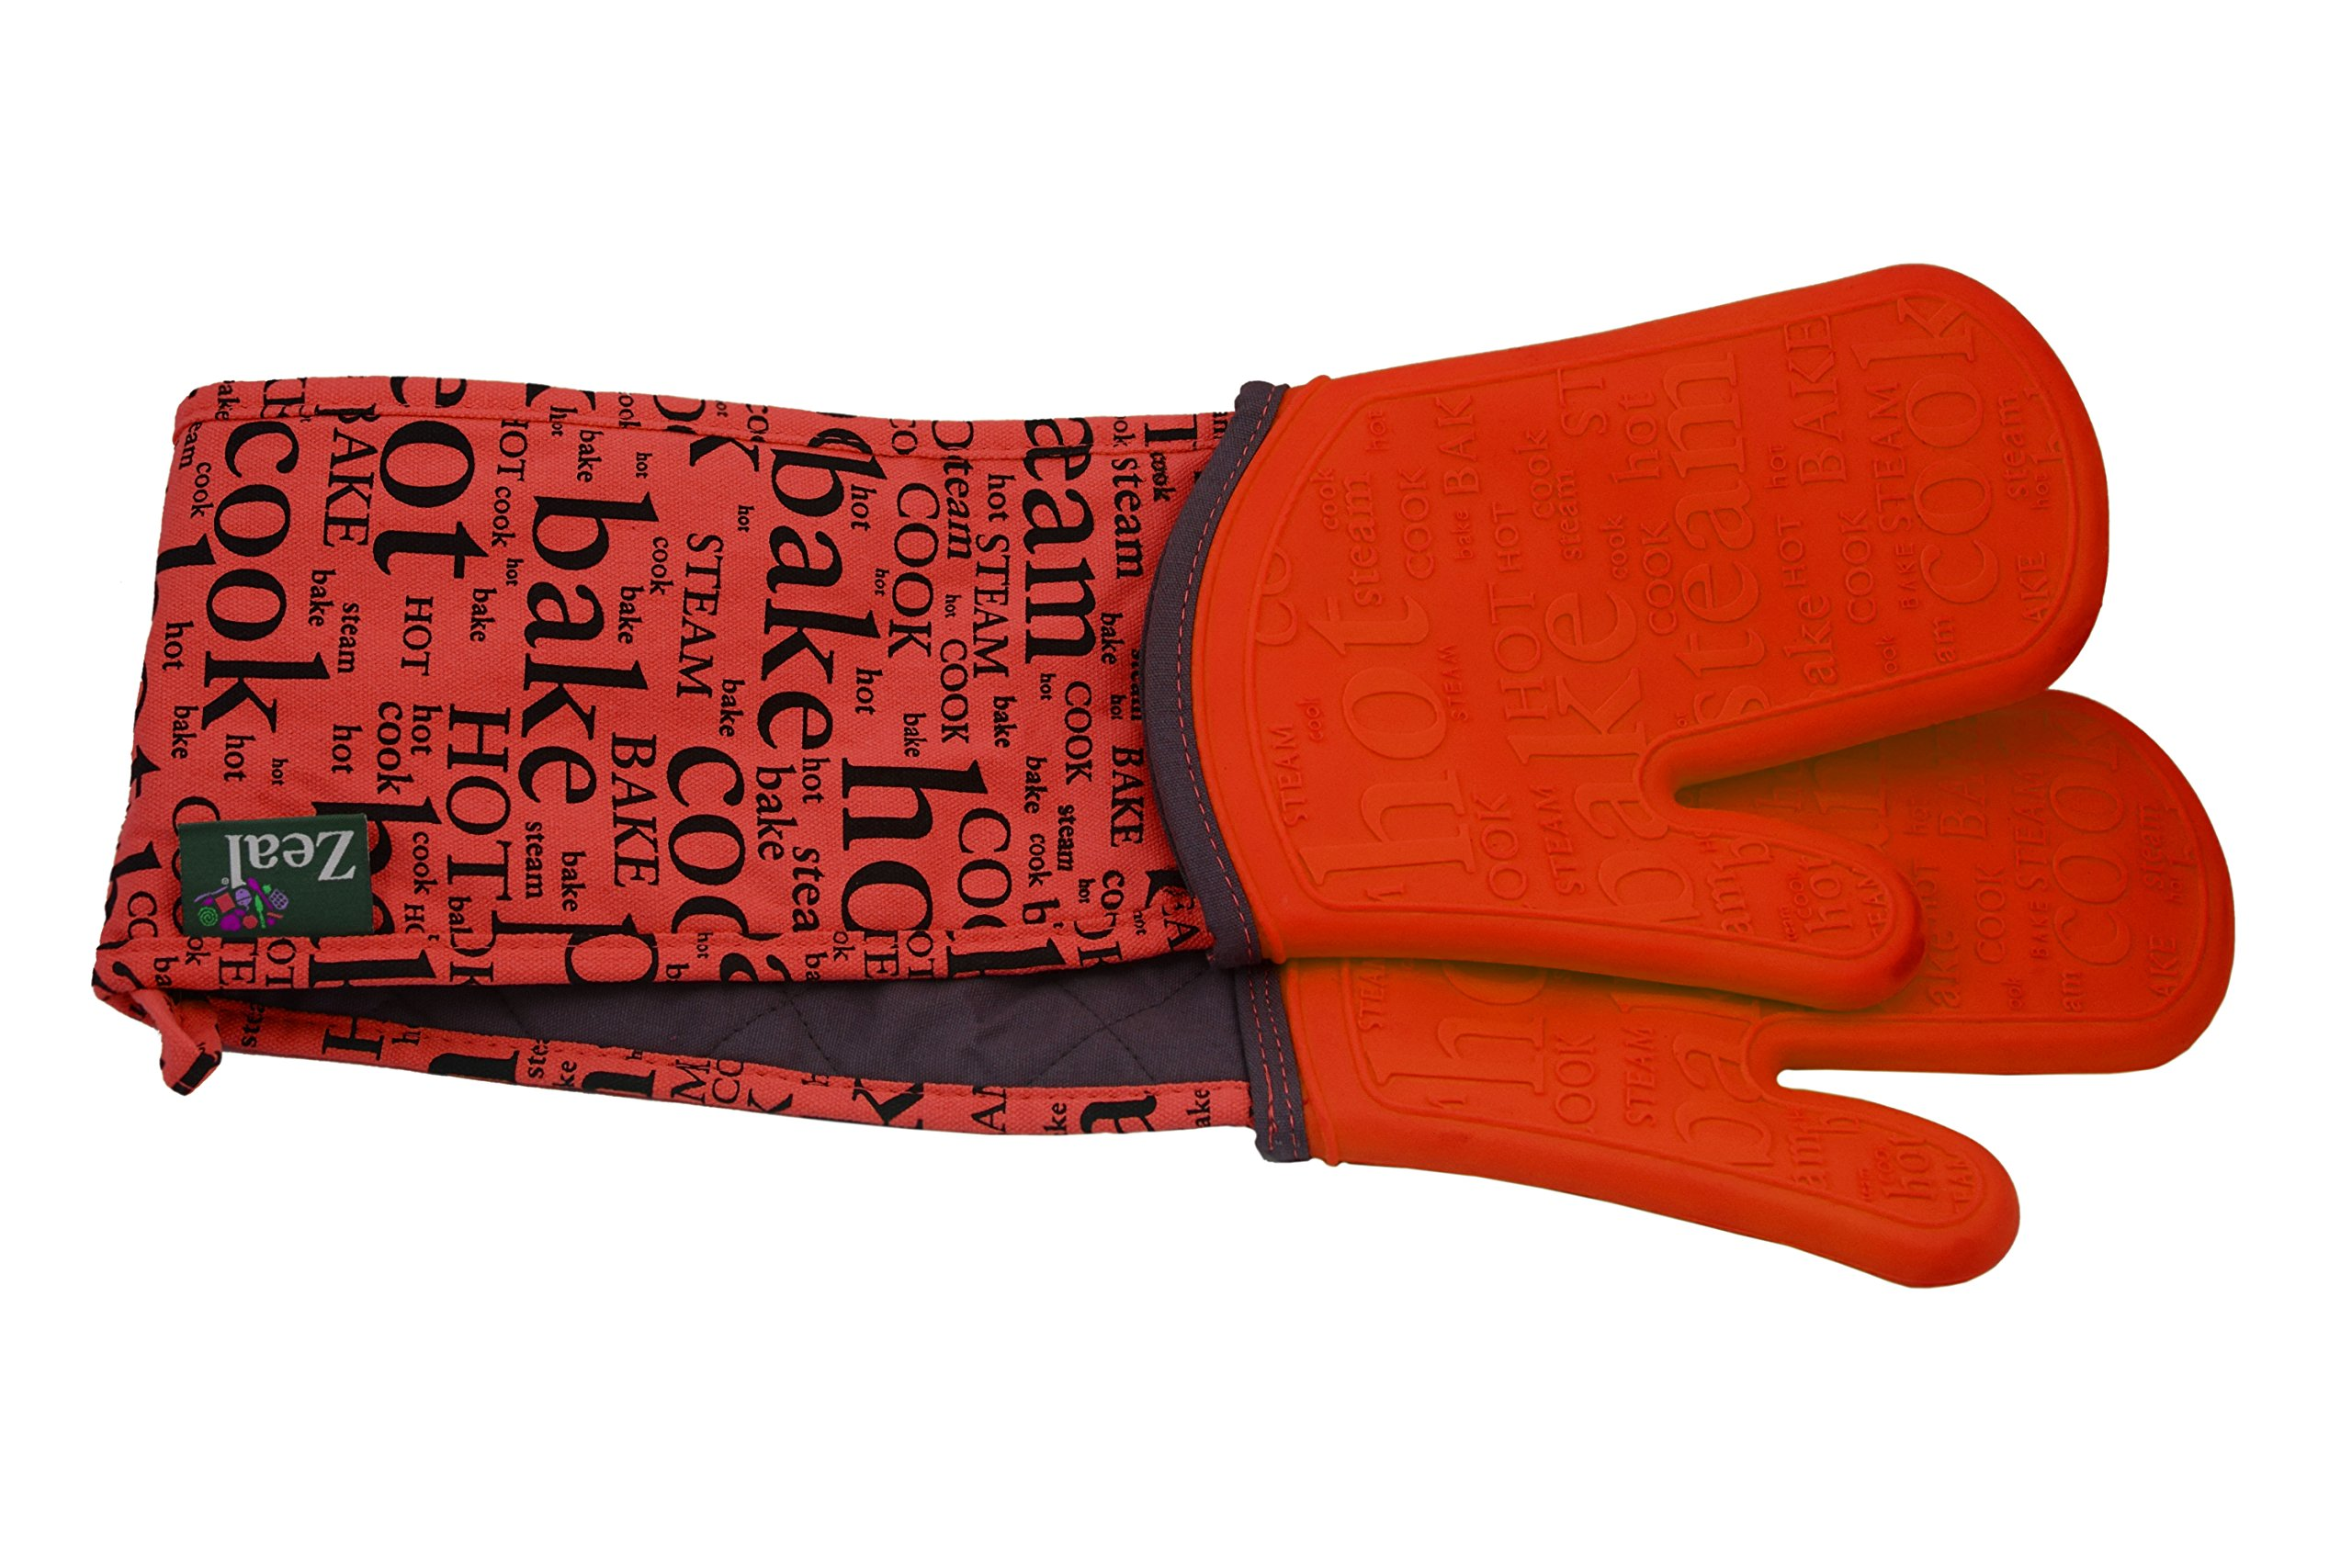 ZEAL Double Steam Stop Waterproof Silicone Oven Glove (Red)